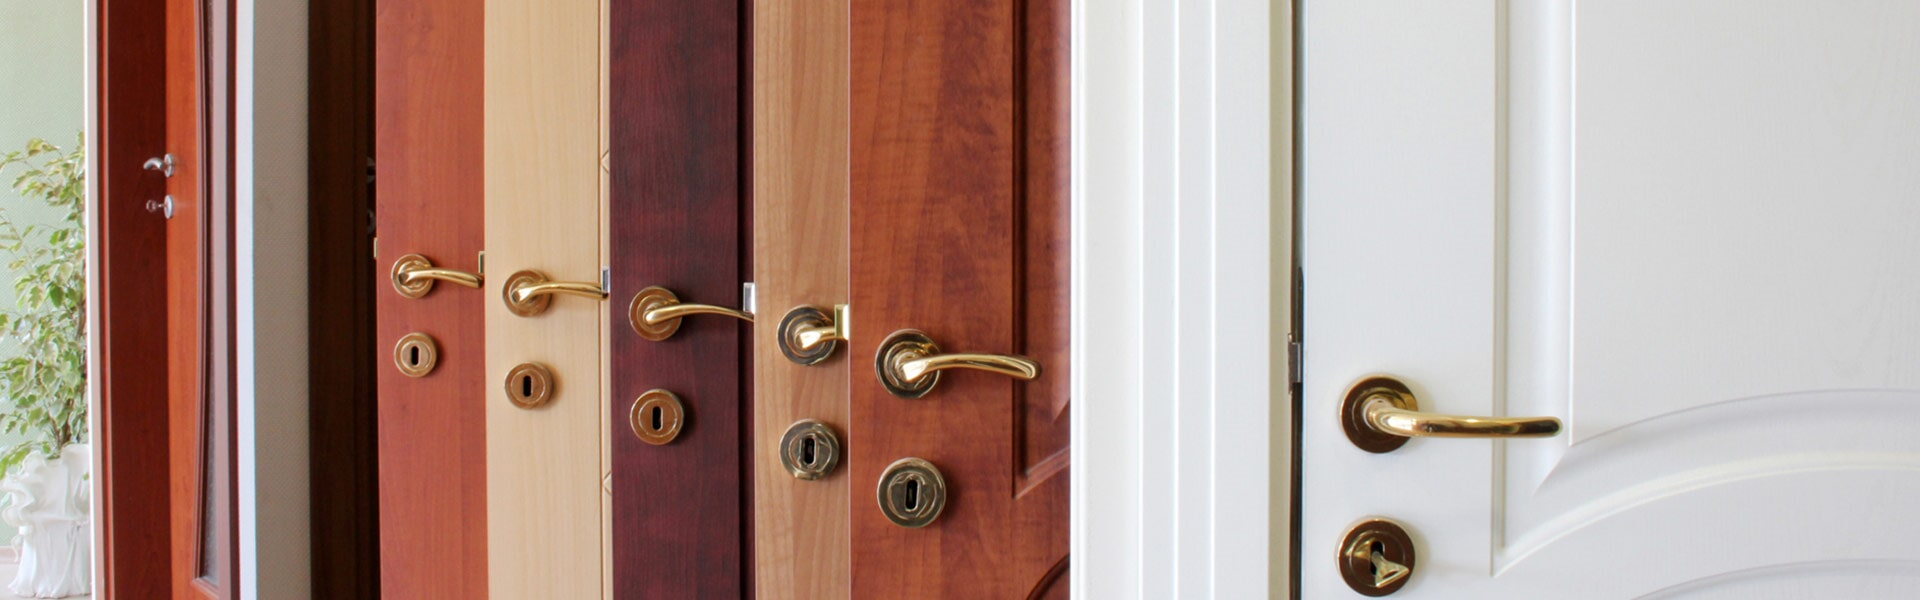 & home - Arbutus MD - Baltimore Door and Frame Company